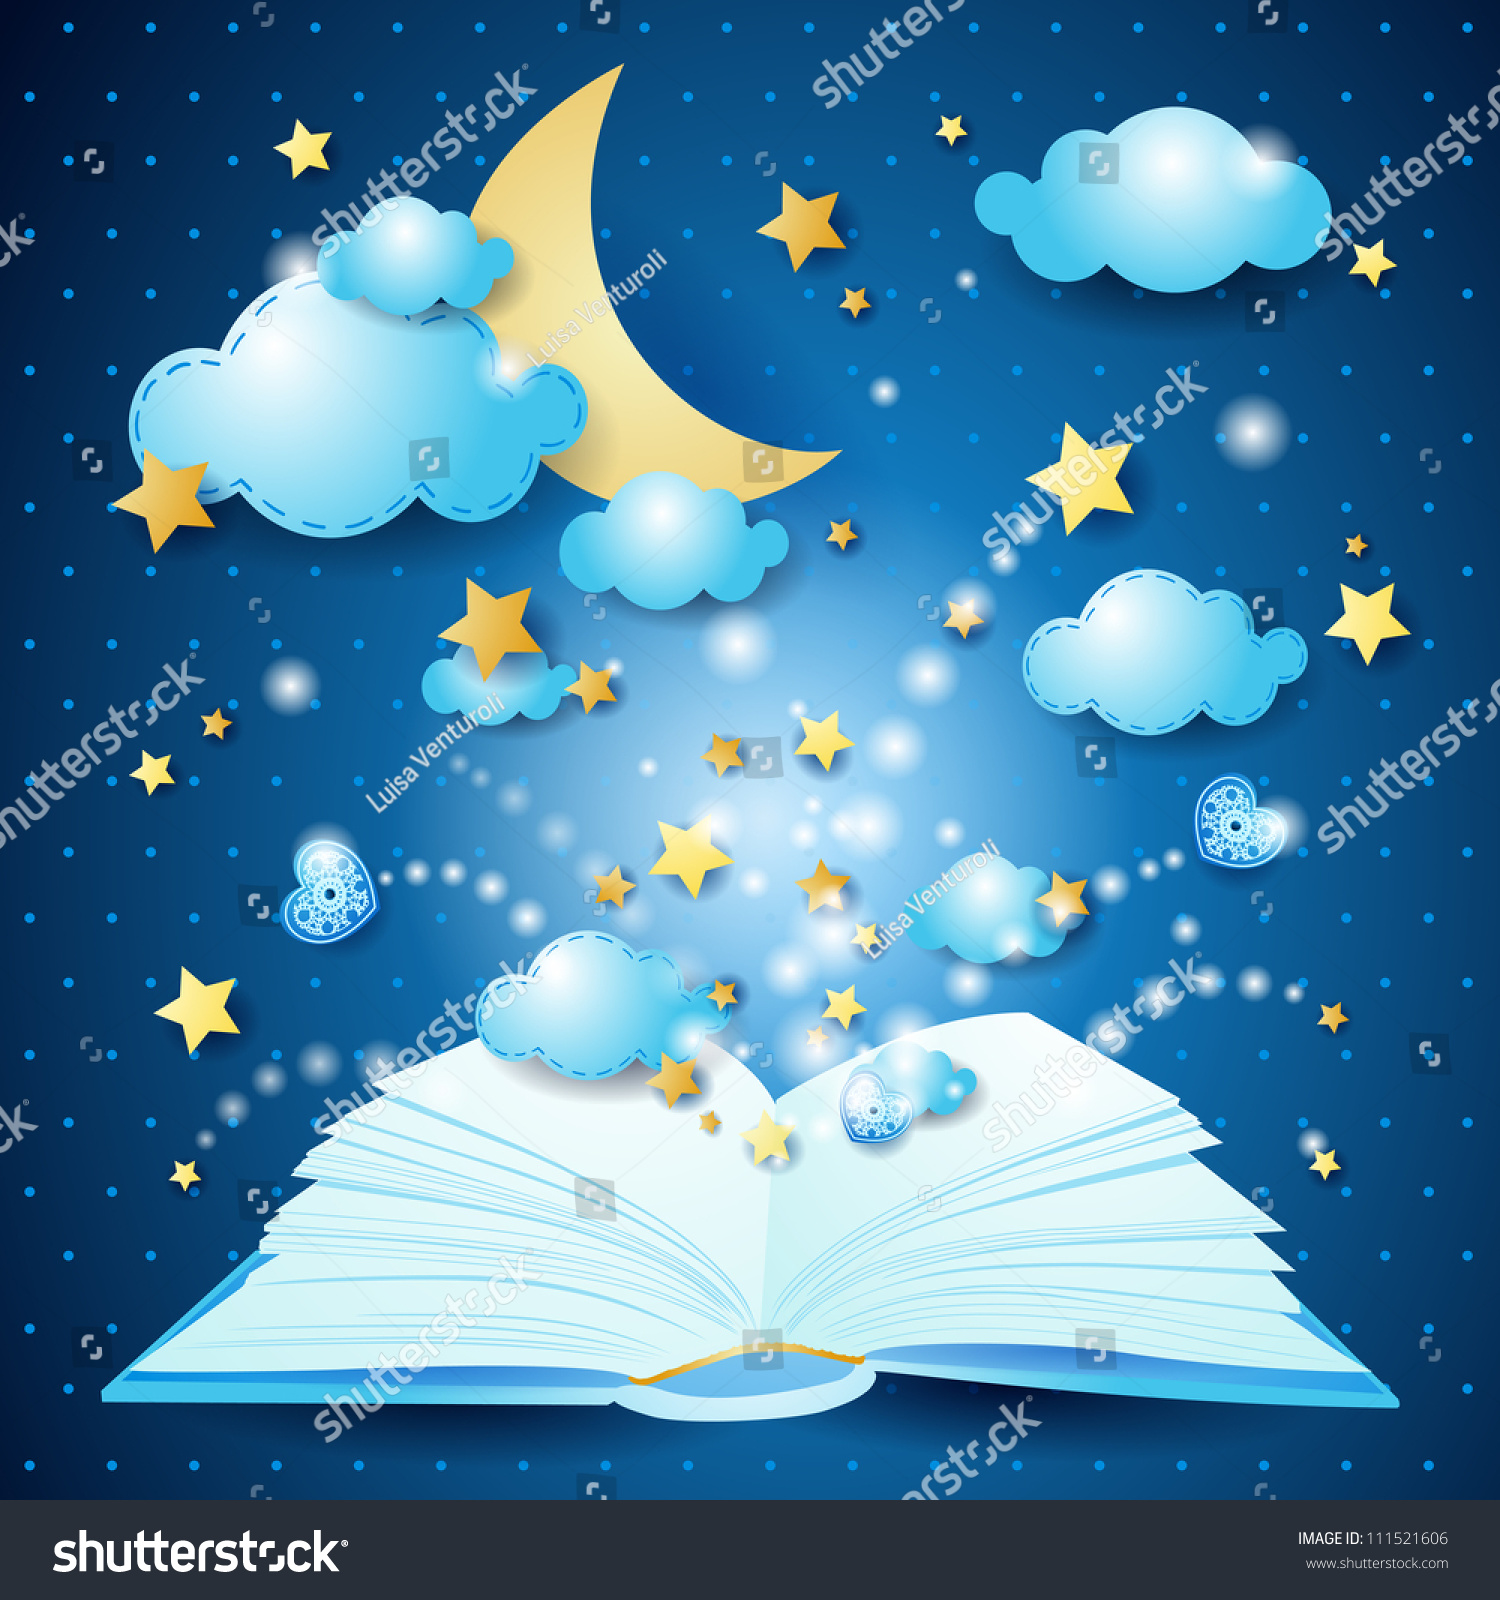 external image stock-vector-the-magic-book-vector-illustration-111521606.jpg